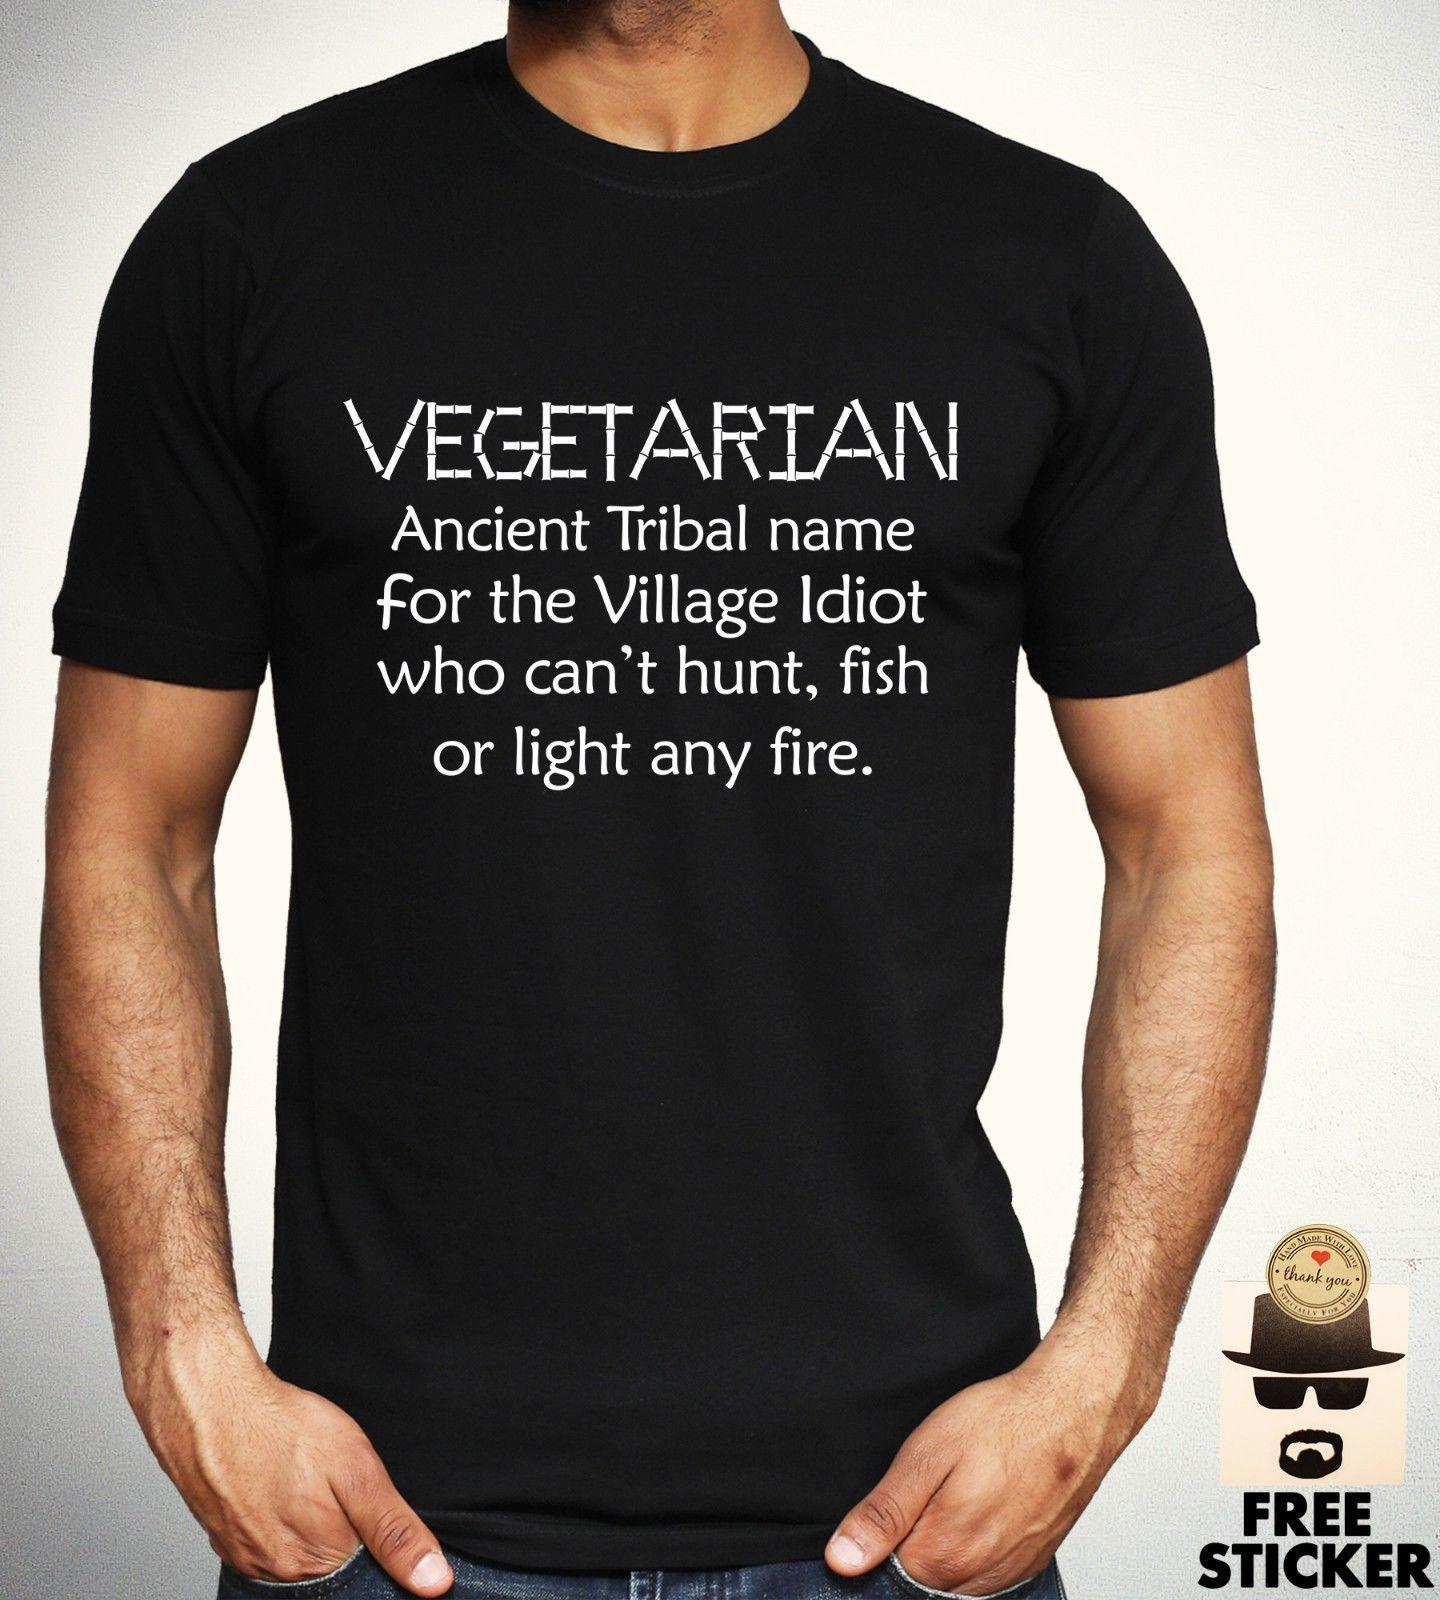 59c5f581 Vegetarian Village Idiot T Shirt Funny Humour Vegan Tee Mens Women Gift Top  S XL Funny Unisex Casual Tee Gift Comical T Shirts T Shirt With From  Tee_spirit, ...